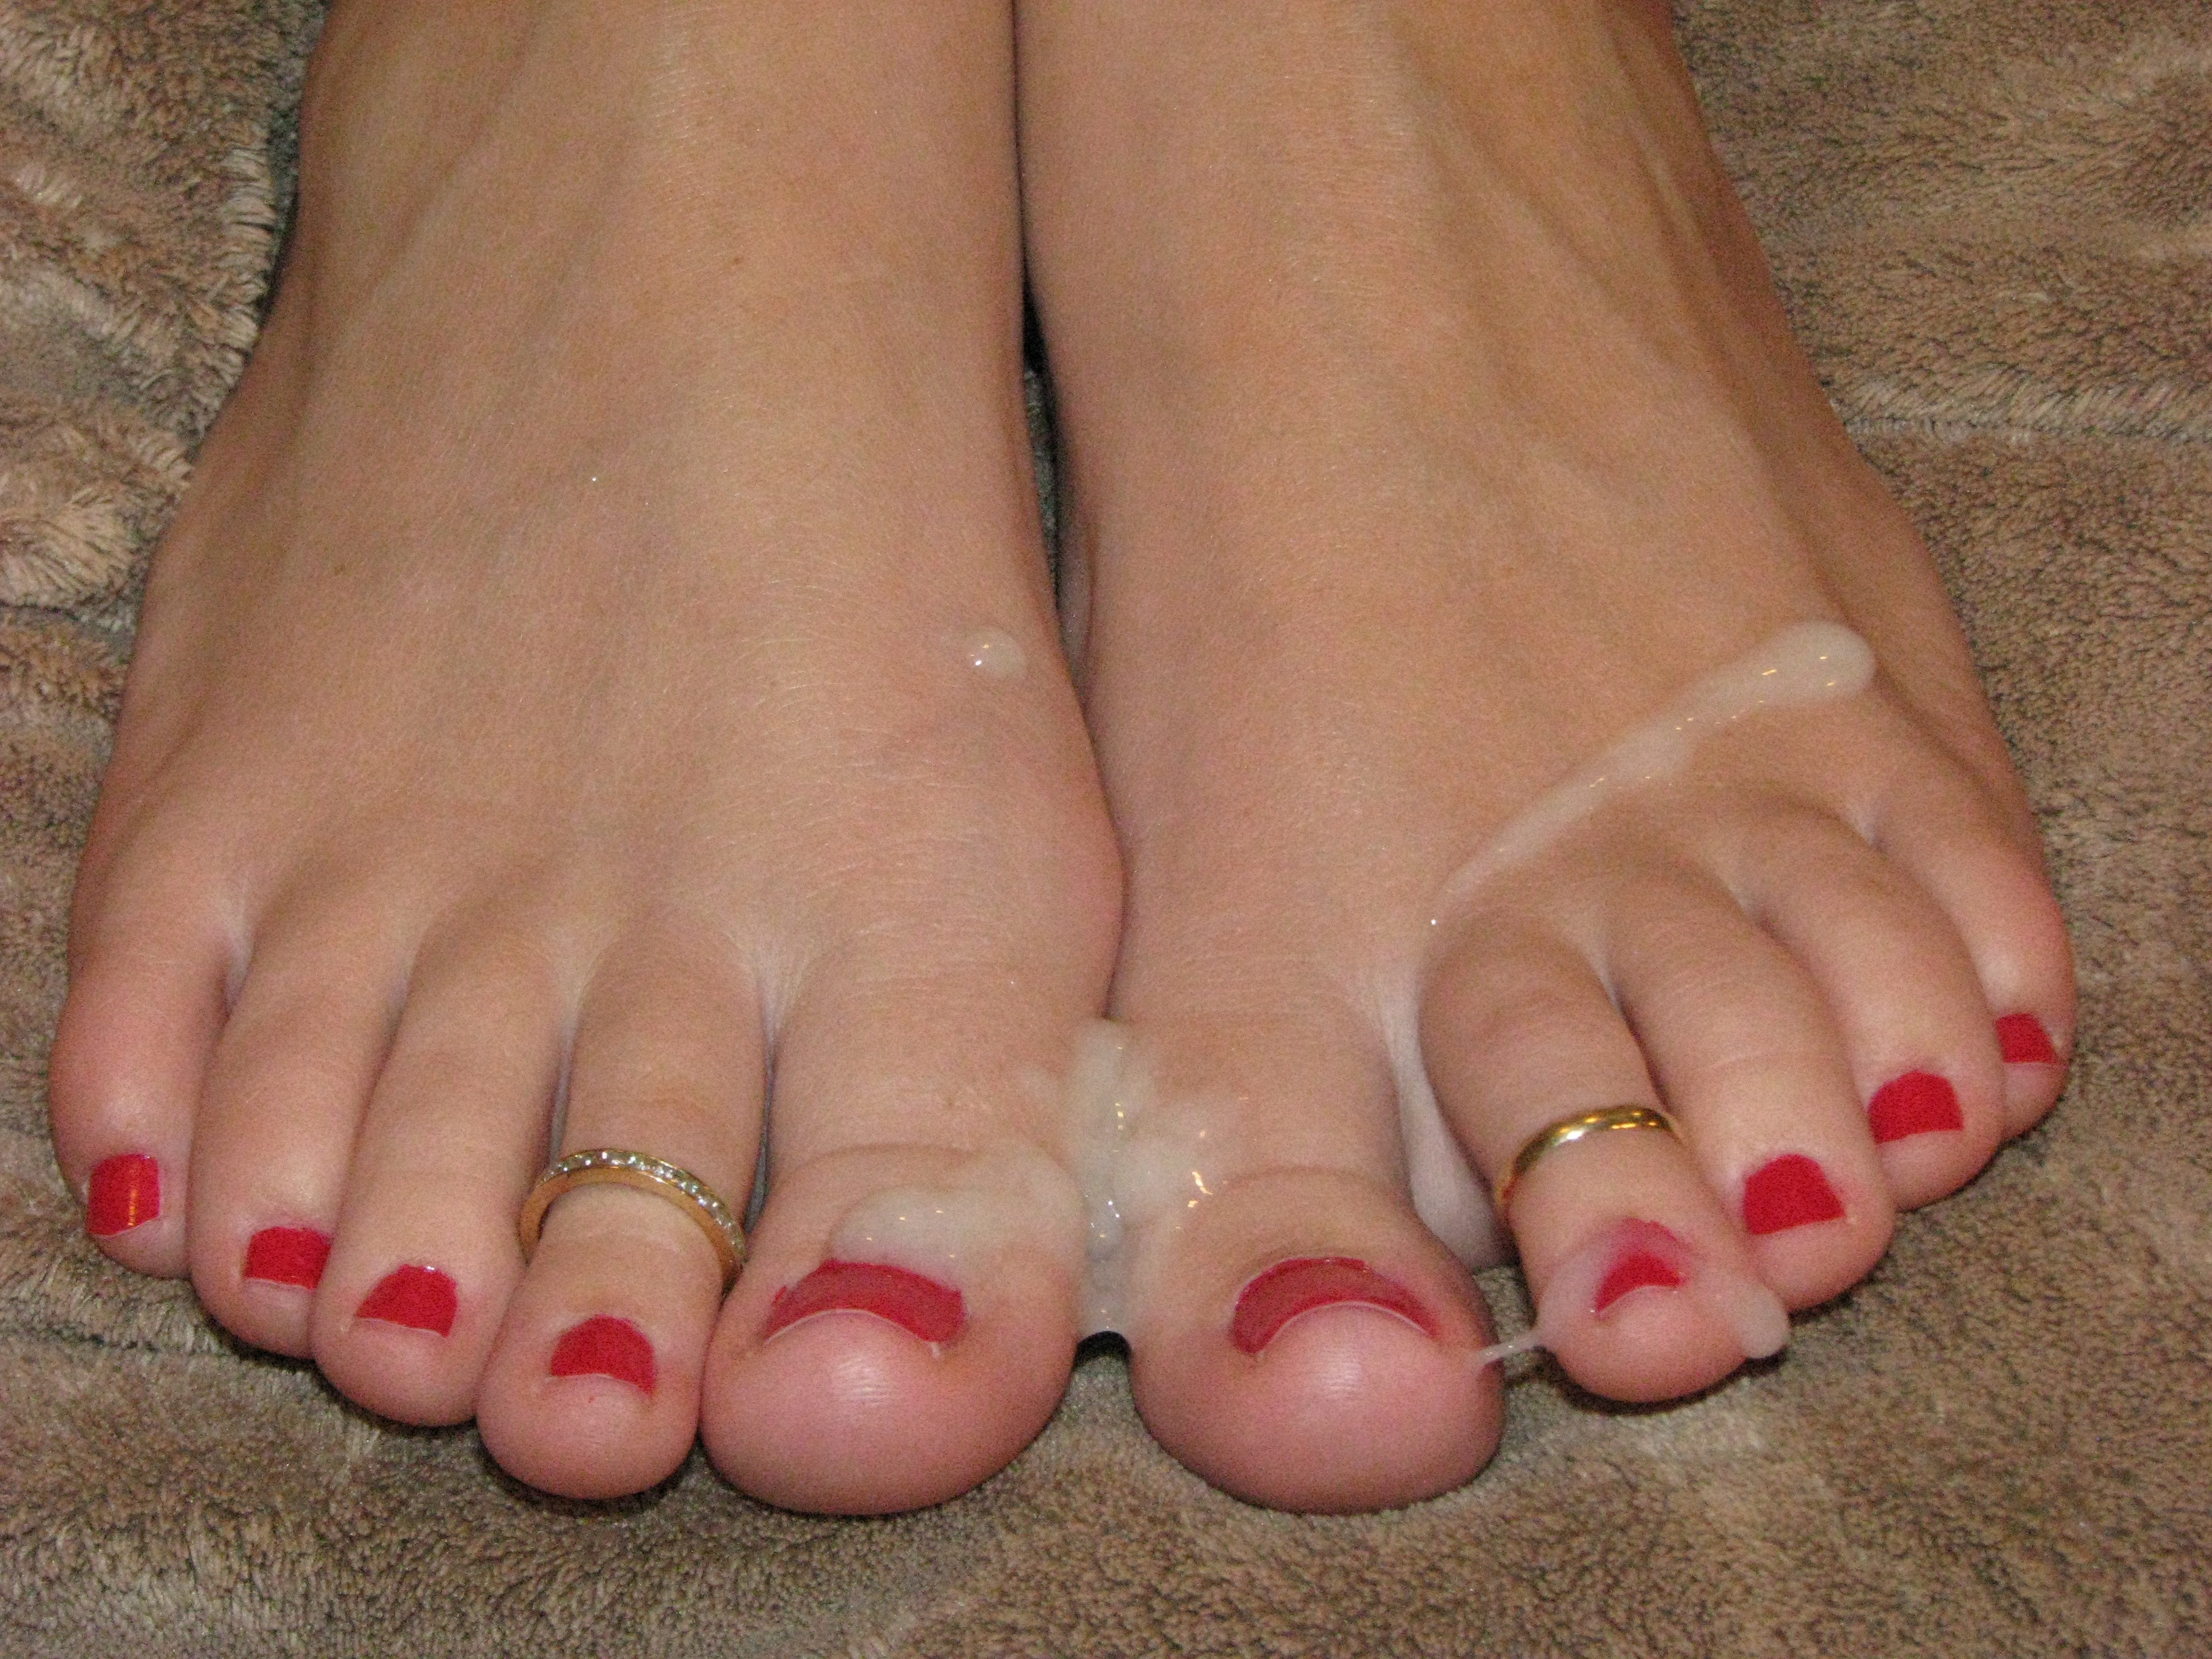 Foot fetish sexy toes galleries яблочко